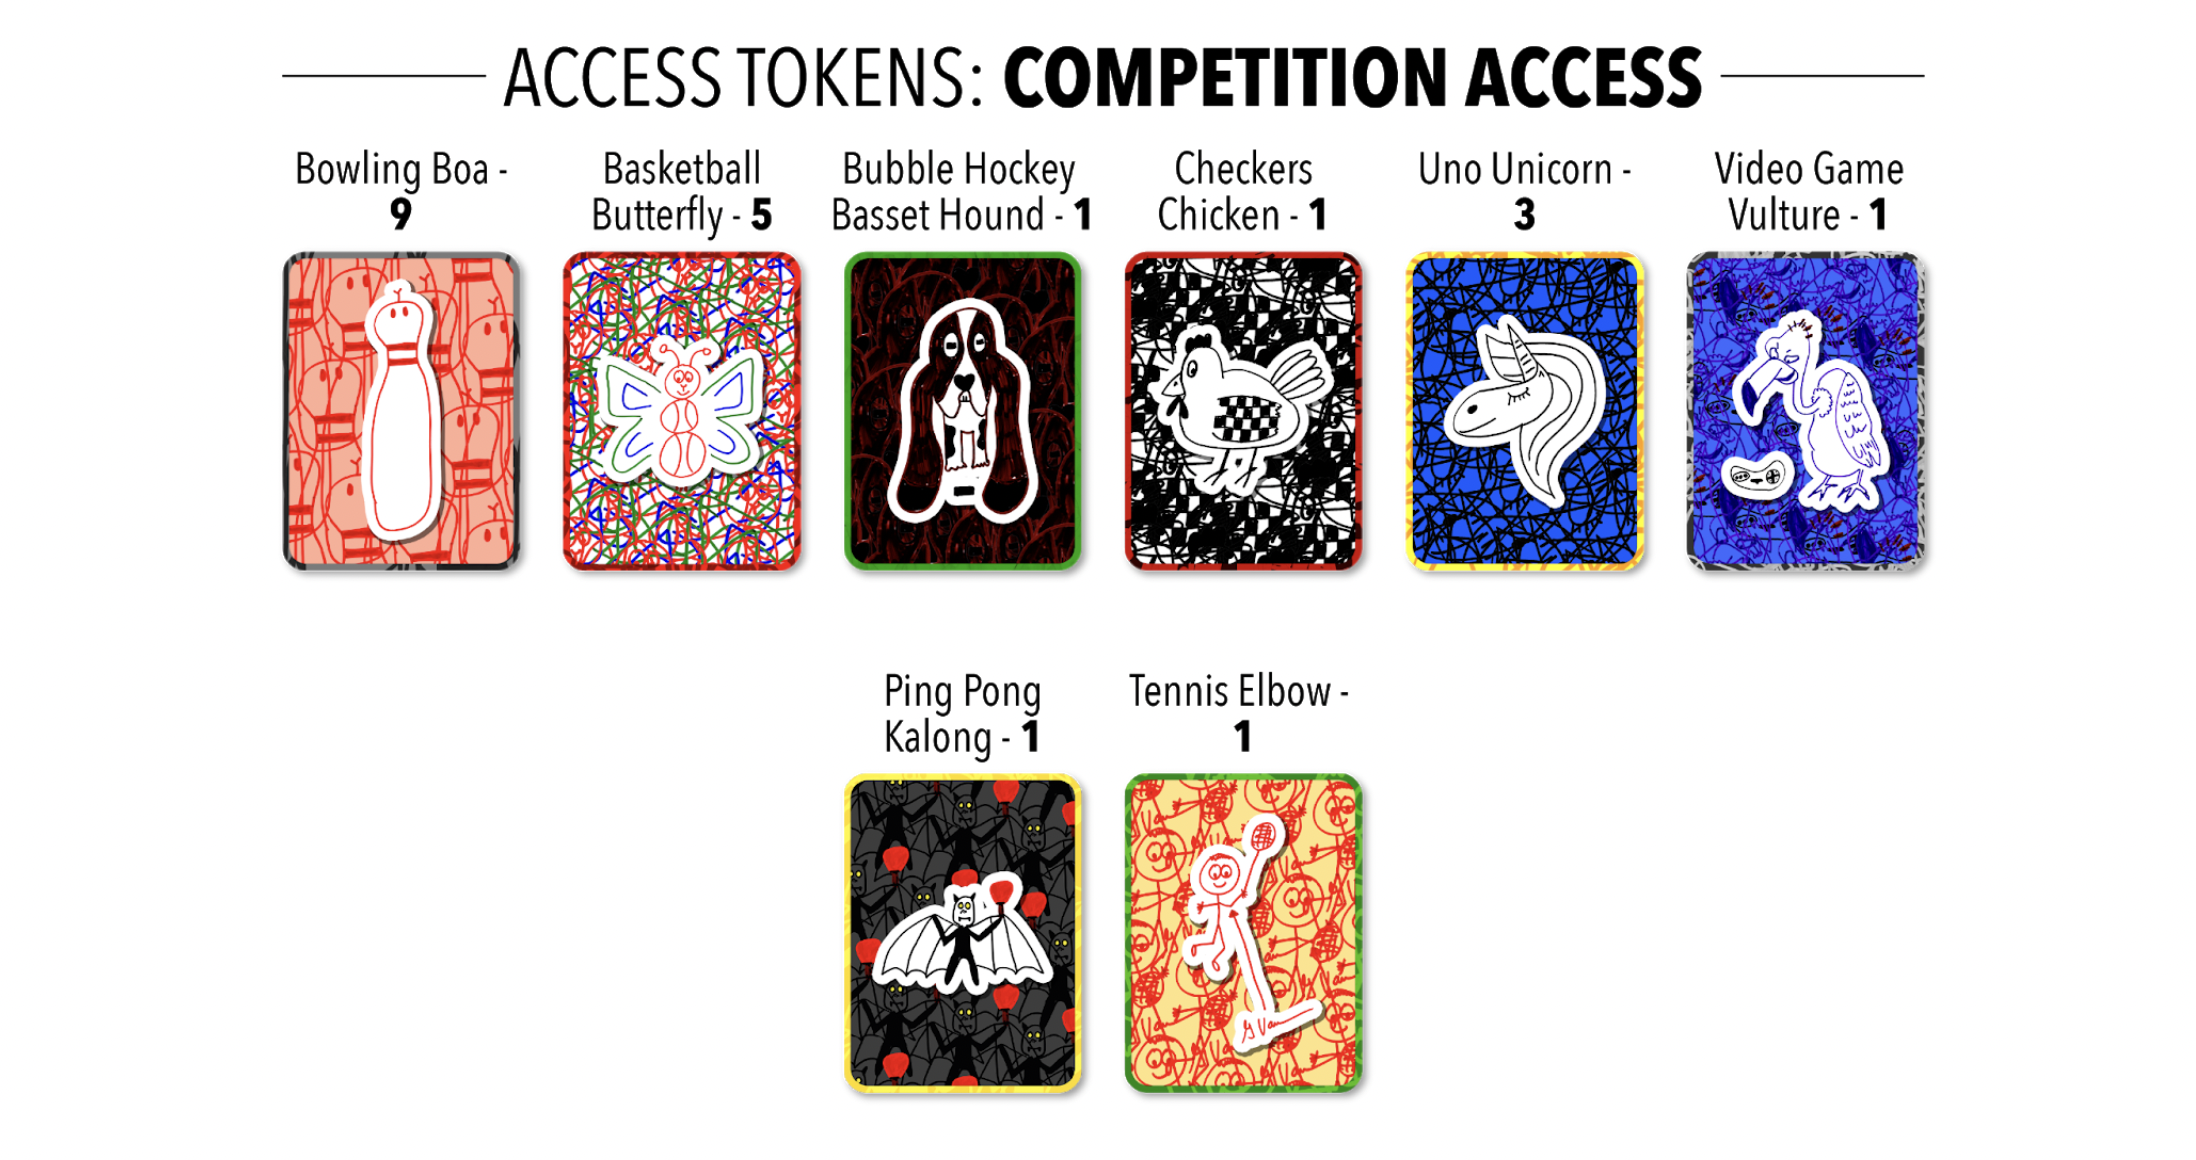 Competition Access Token